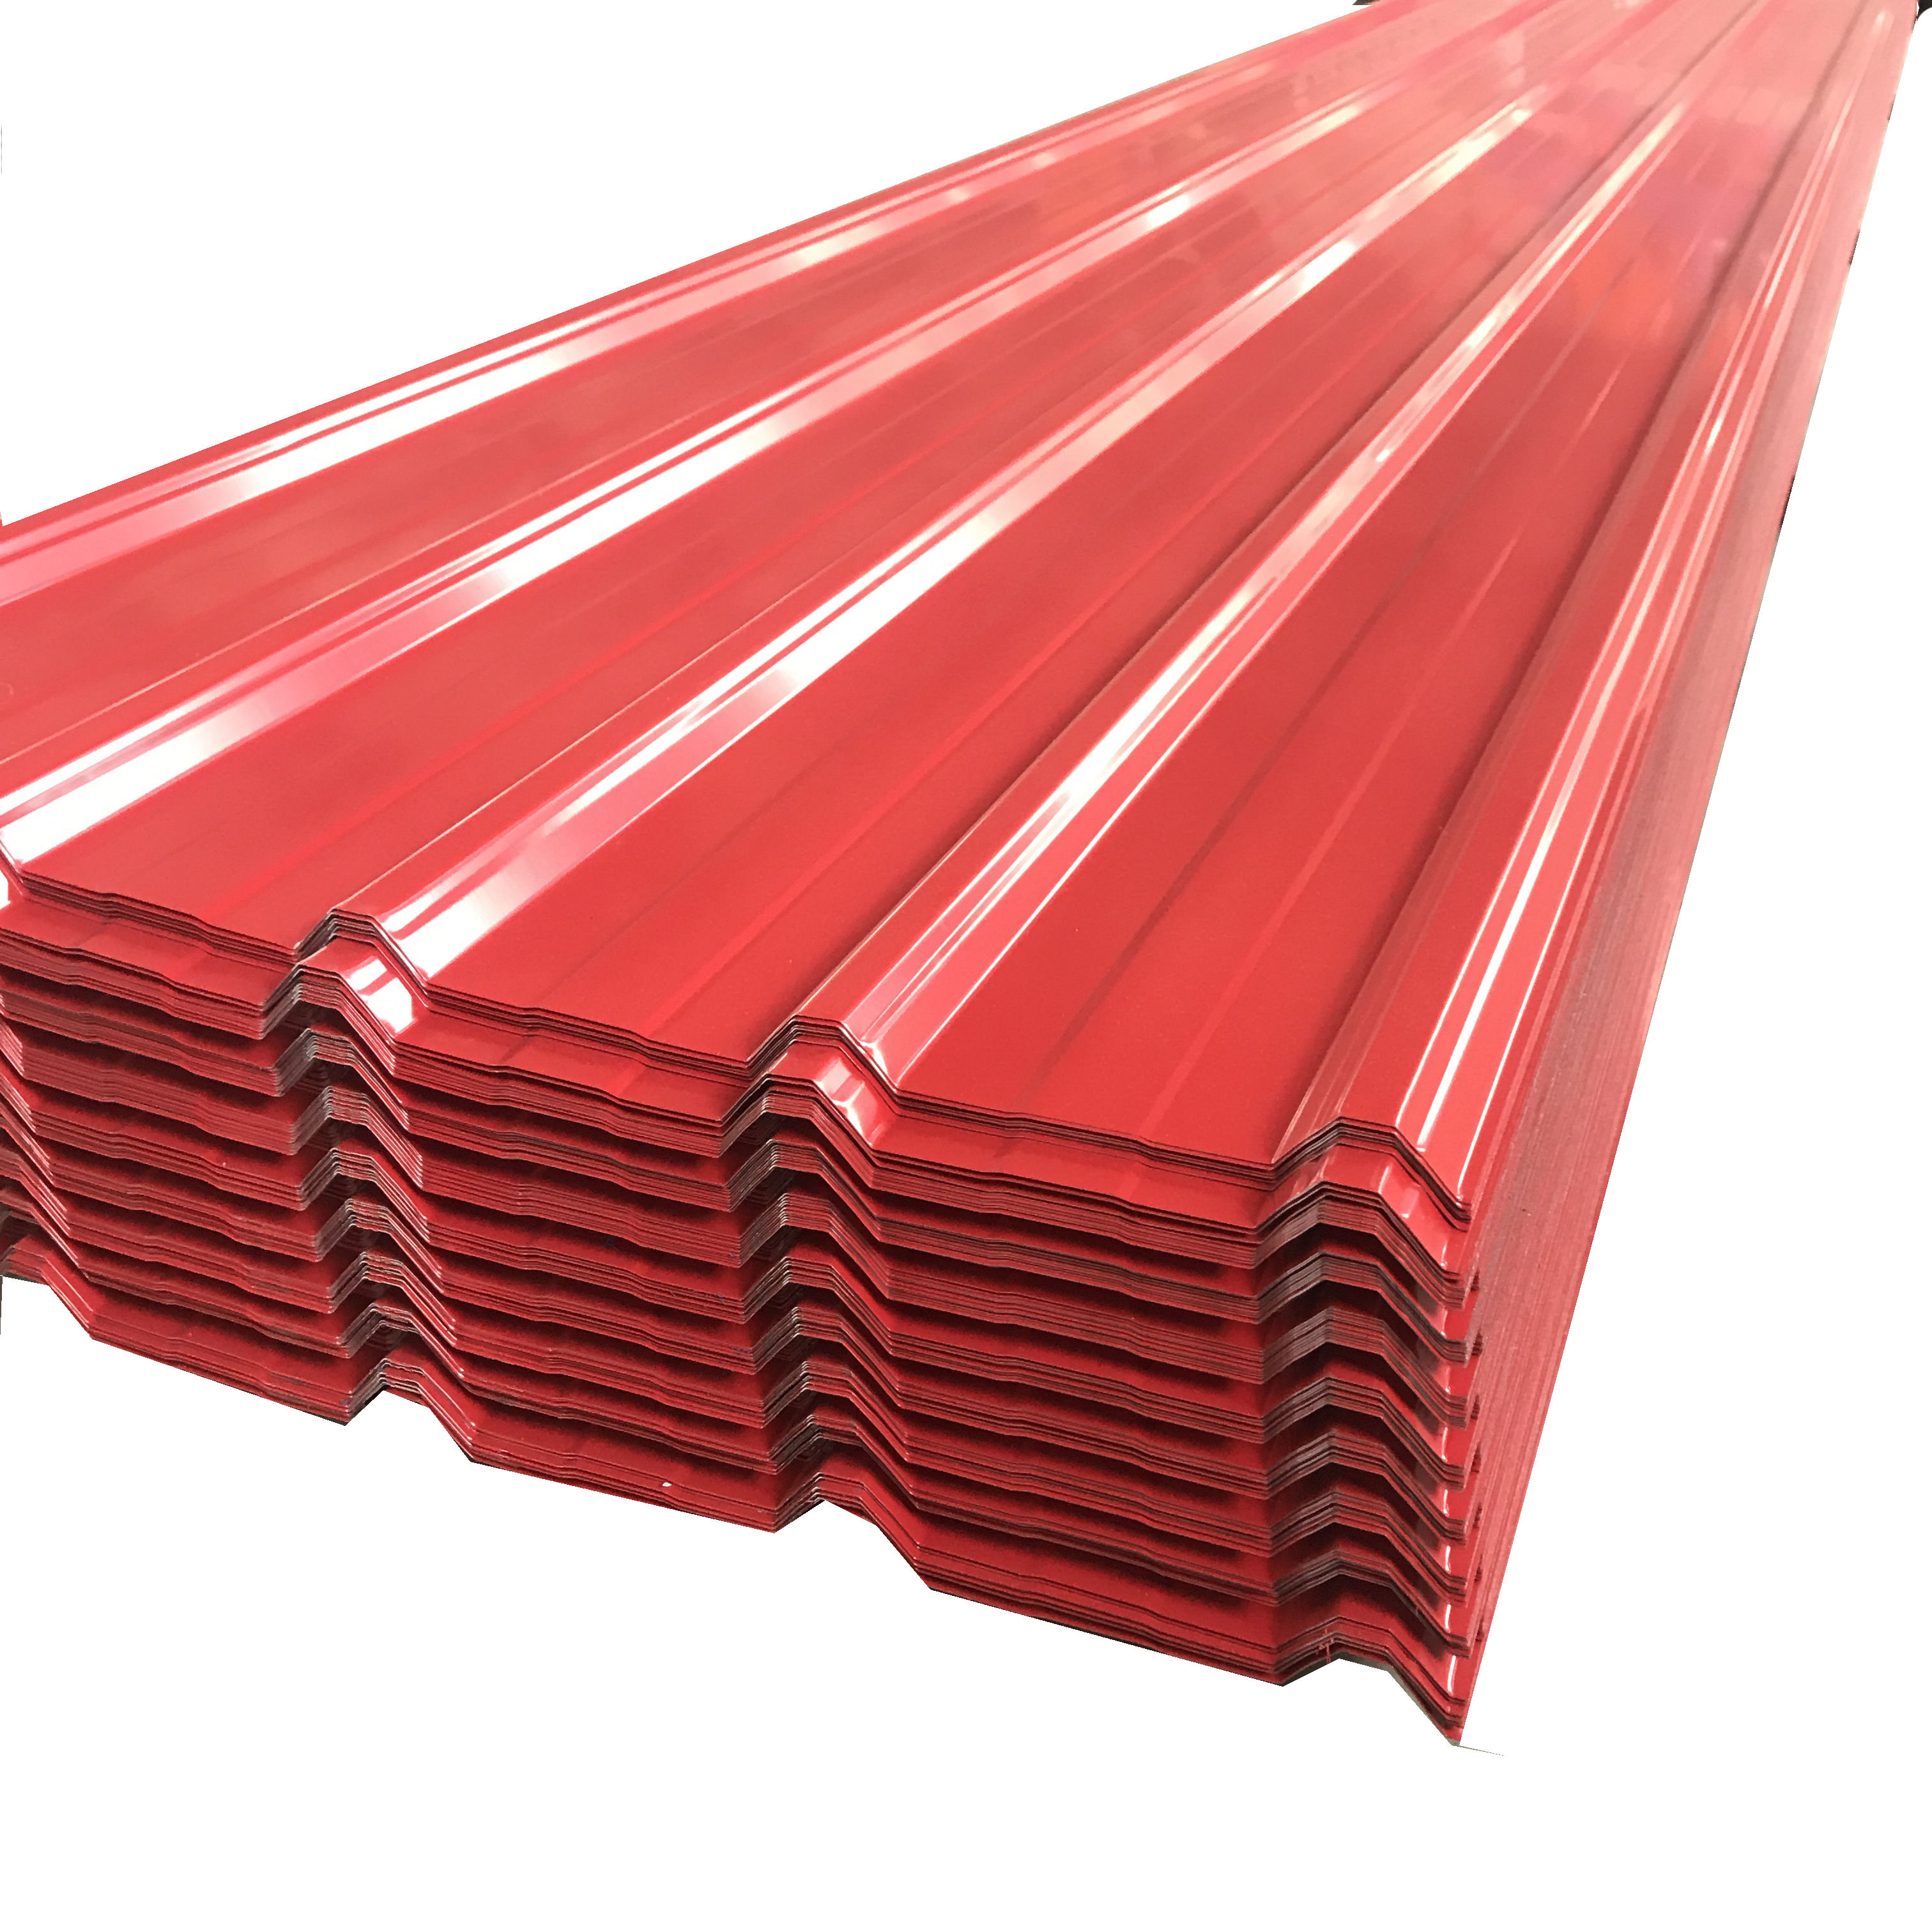 PPGI roofing steel sheets color coated galvanized corrugated corrugated zinc 30-275gsm Long span color steel corrugated